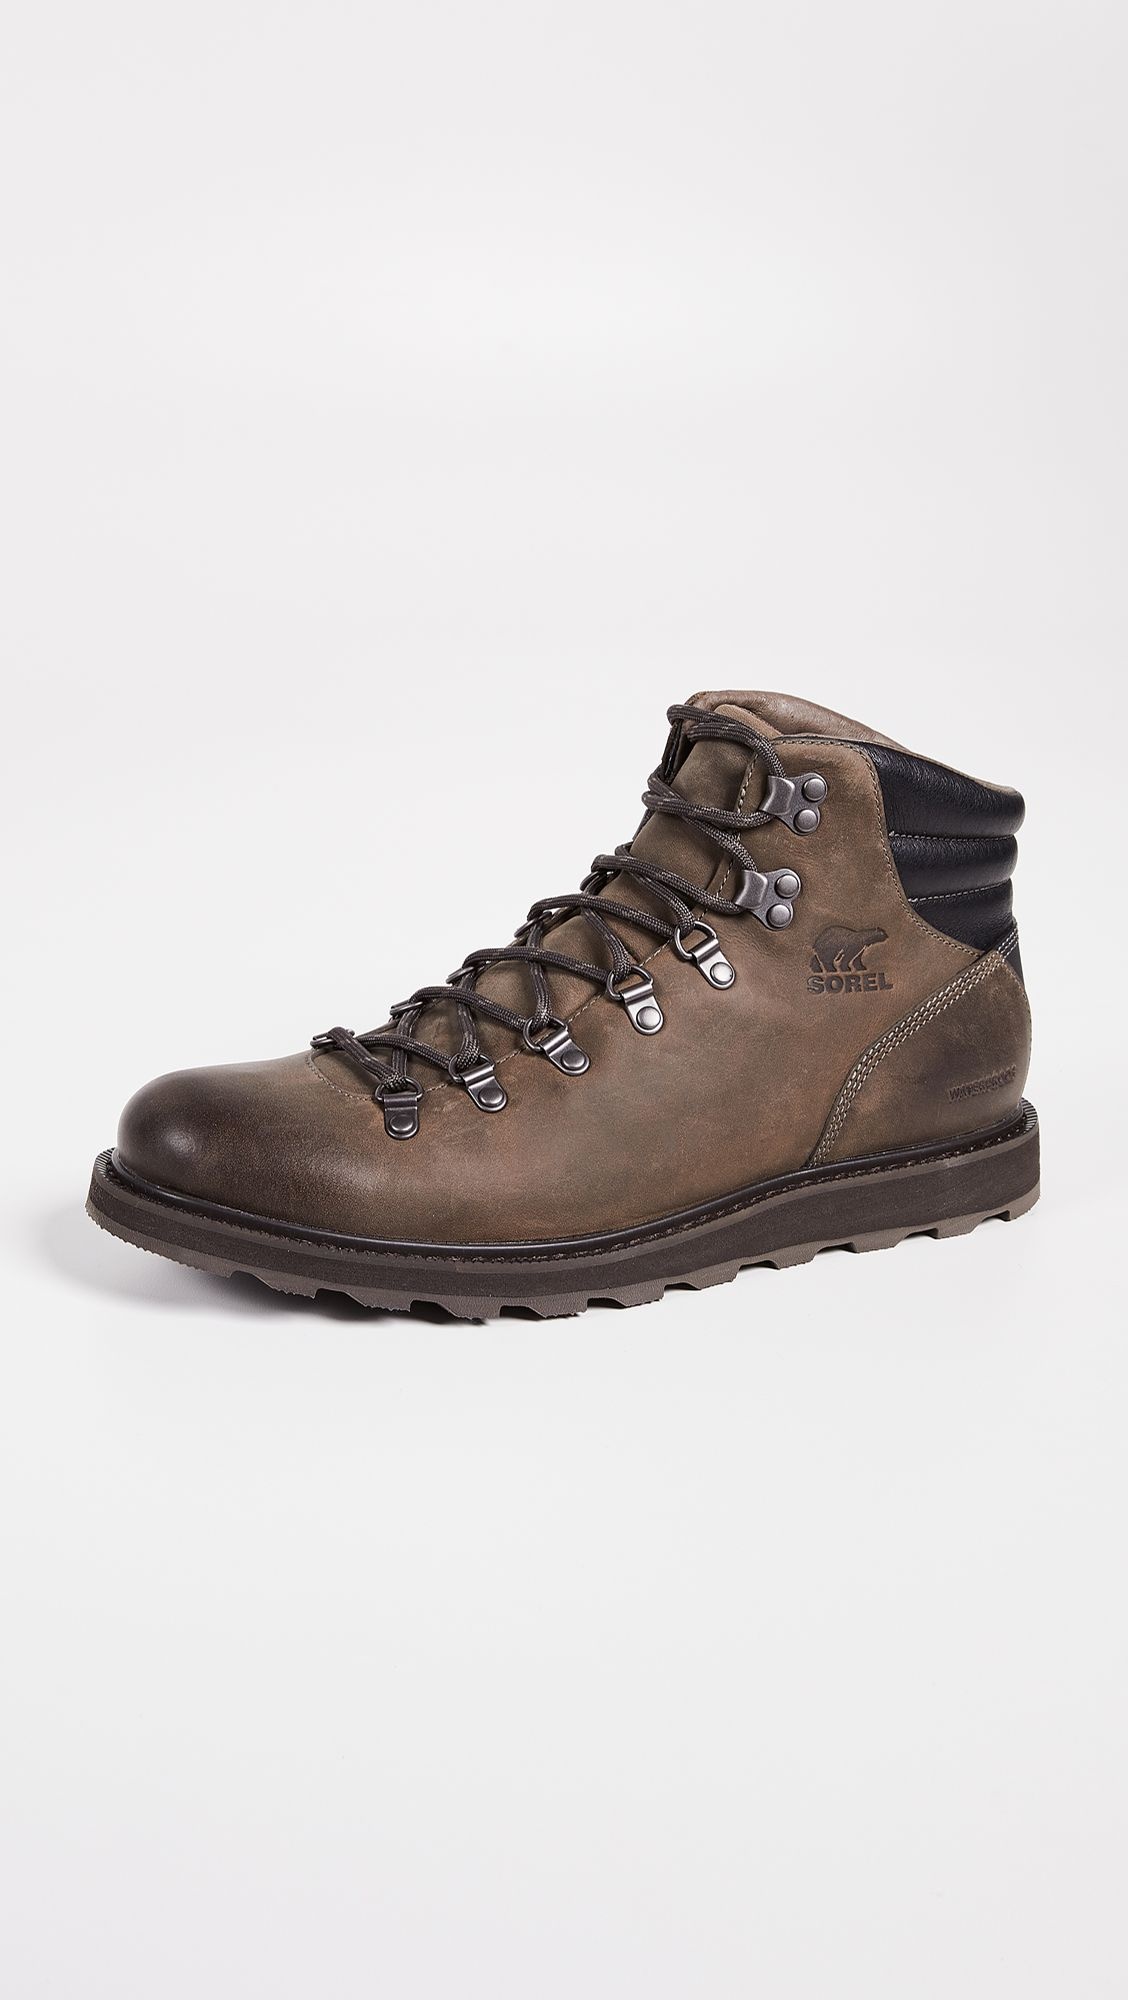 3365f513c7d Sorel Madson Waterproof Hiker Boots in 2019 | Style for Work | Boots ...